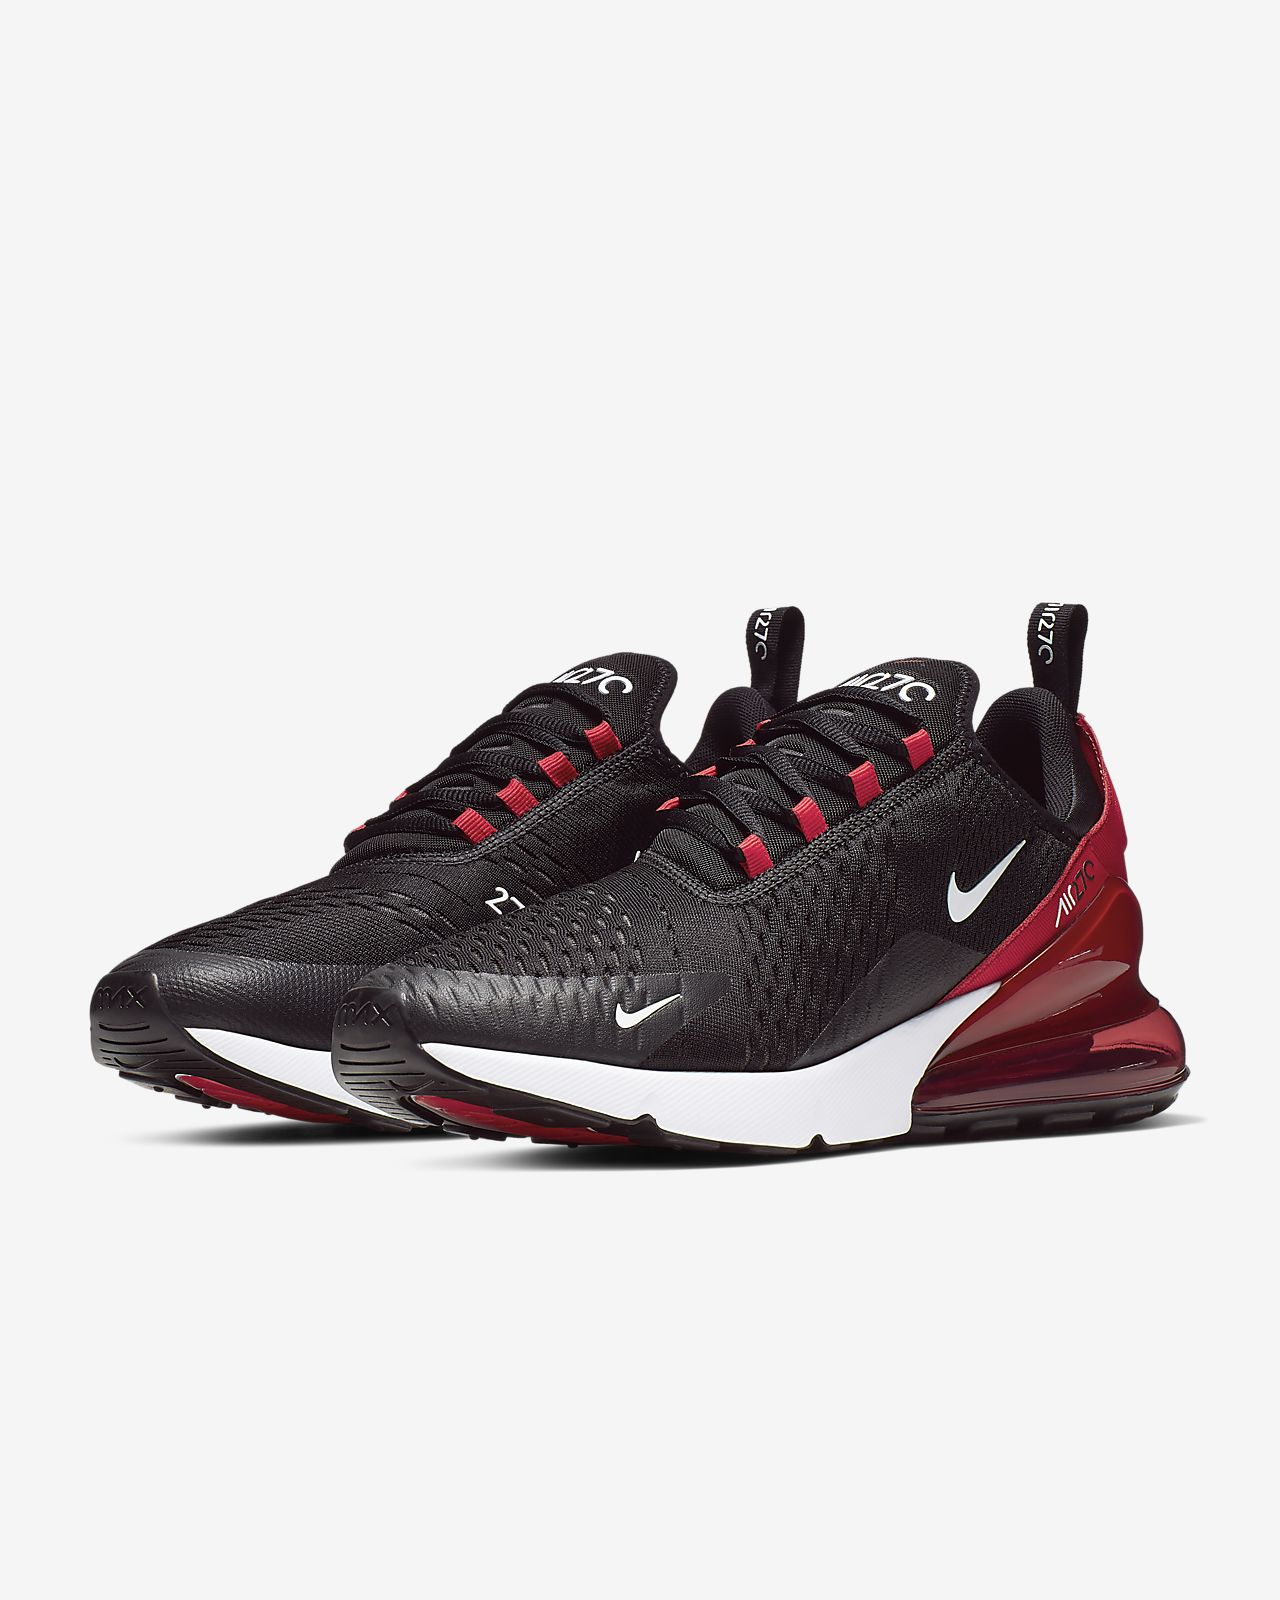 meet e89a8 15a2b Men s Shoe. Nike Air Max 270